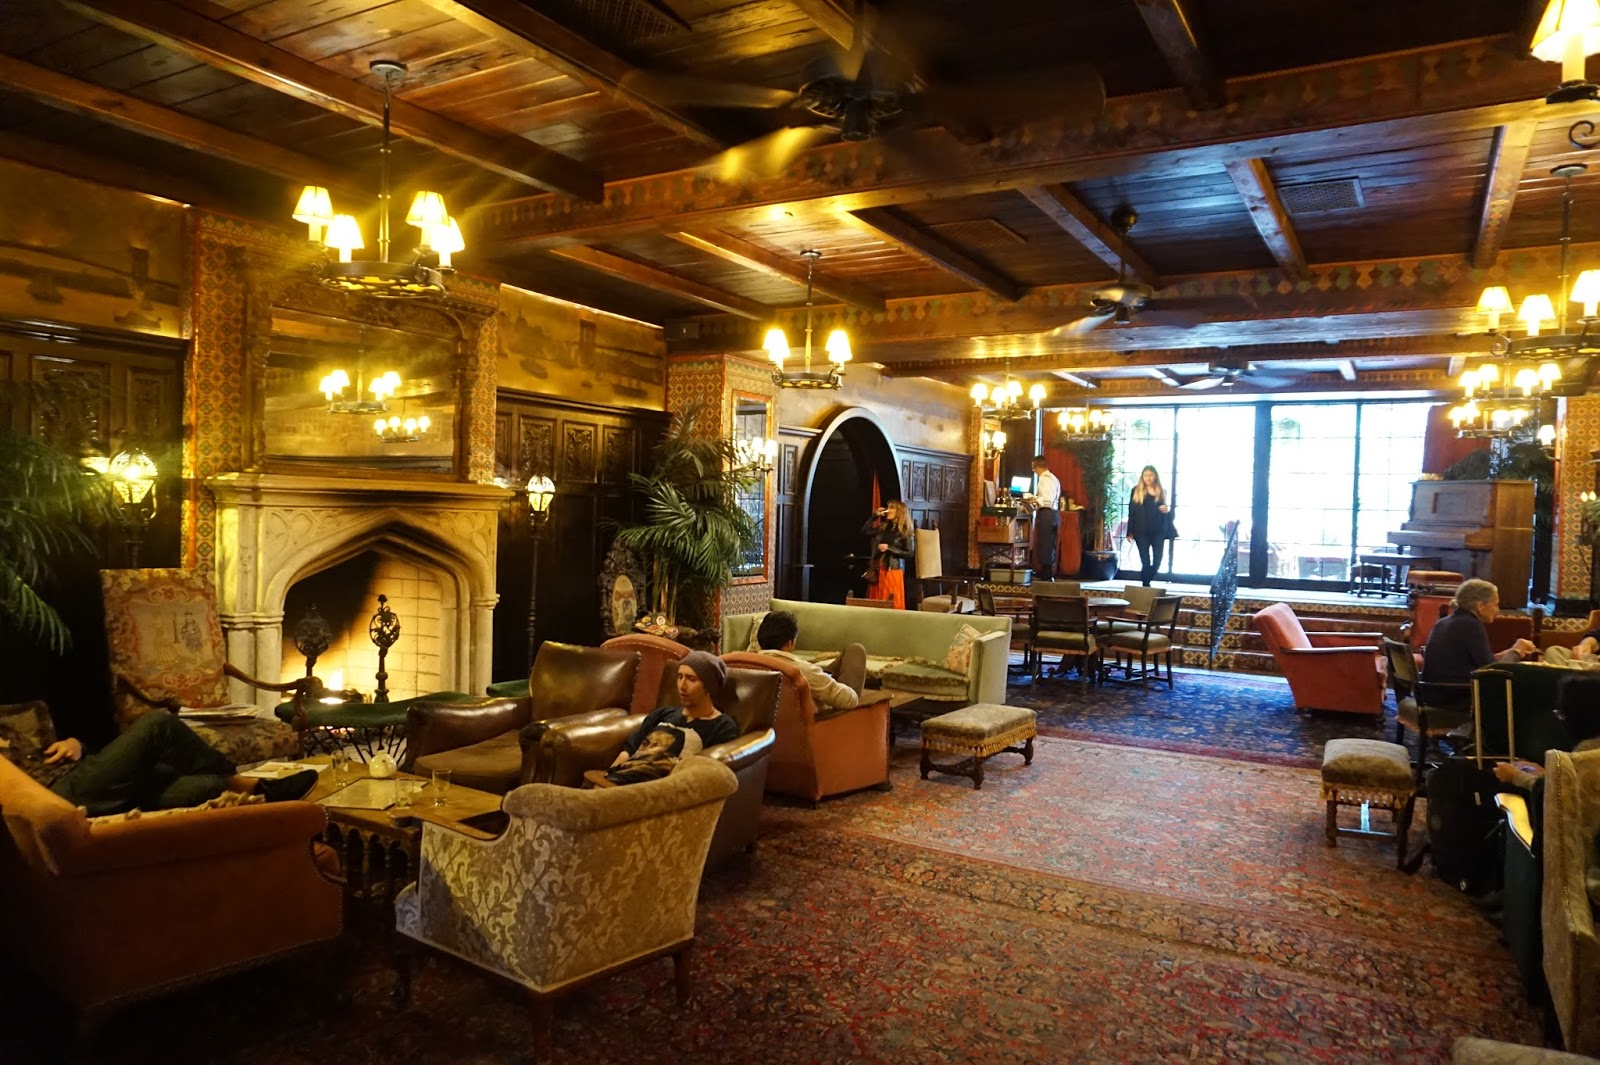 Review of the bowery hotel in new york city lifestyle